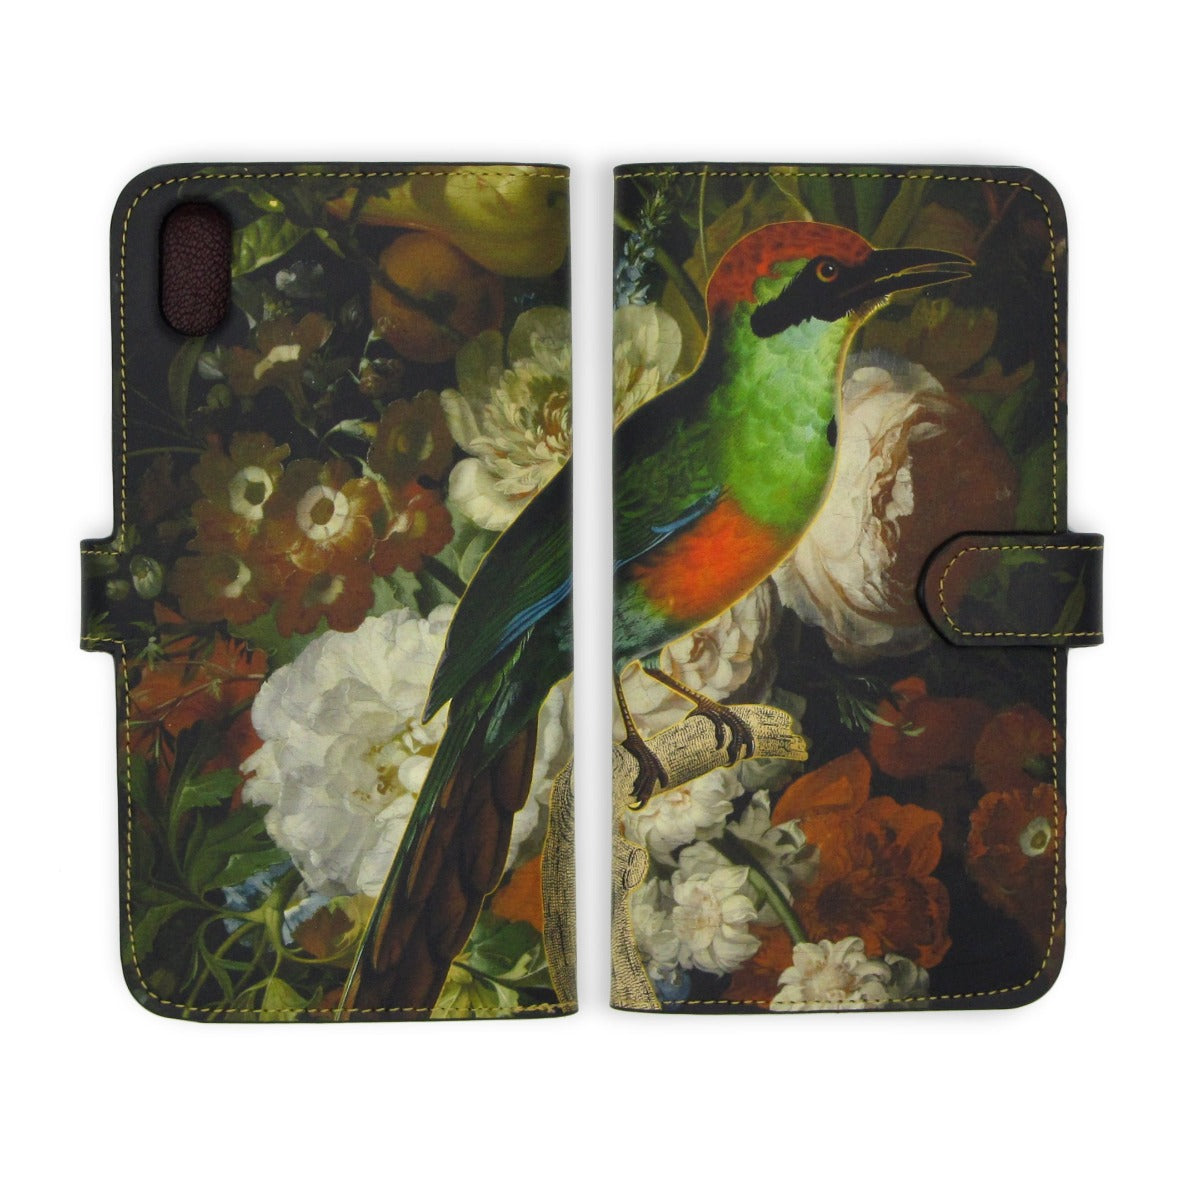 iphone wallet phone case - Bird - Floral print phone case - Leather Folio Phone Case - Botanical case - female phone case - Tovi Sorga